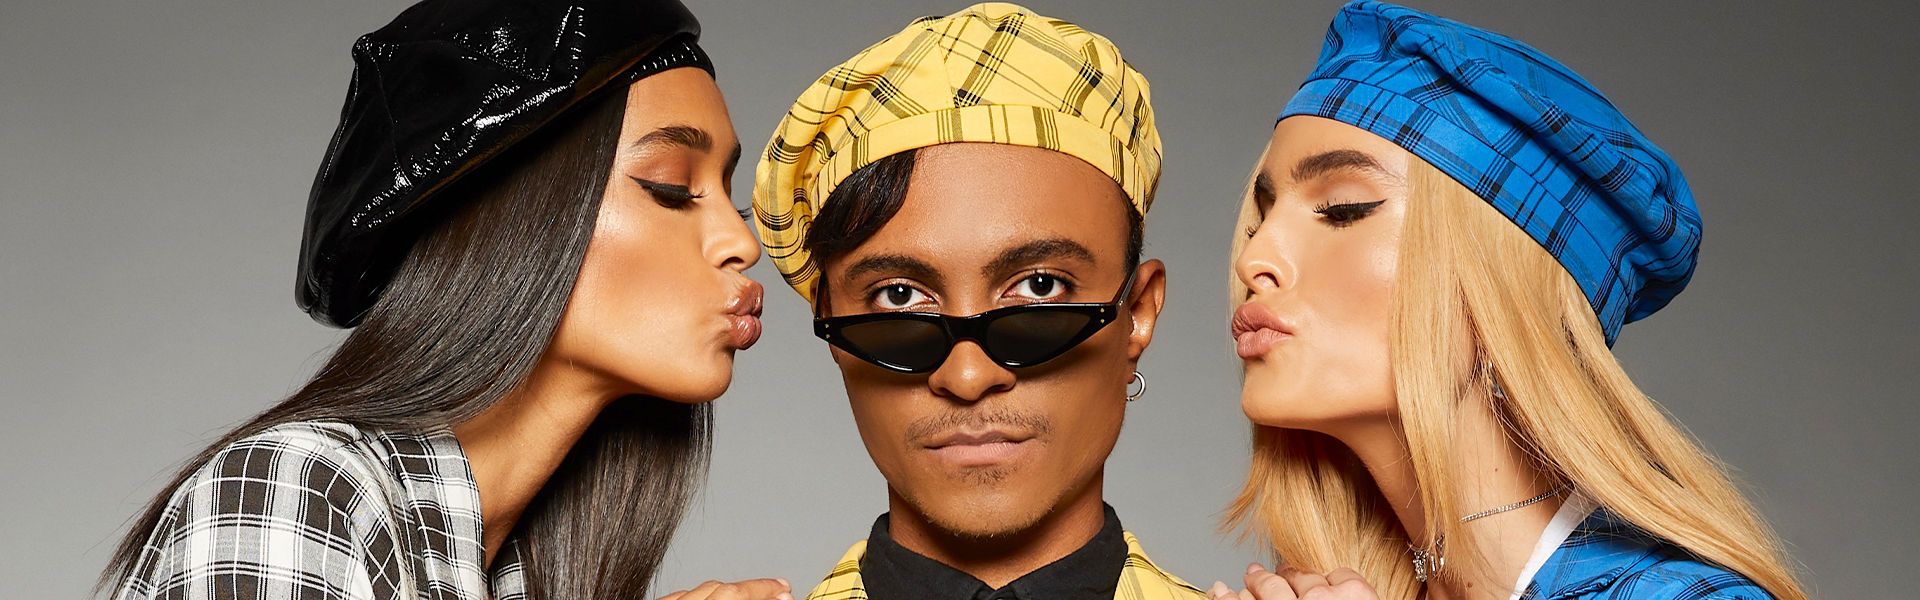 This is a picture of Hayden Williams (centre) with two Misguided models either sided of him giving him an air kiss on either cheek. Hayden is in yellow plaid and the two models are also in plaid, the one on the right is in blue plaid and the one n the right is in black and white plaid. All three in the picture are wearing a beret. Hayden is looking over the shades he is wearing, looking straight to camera.